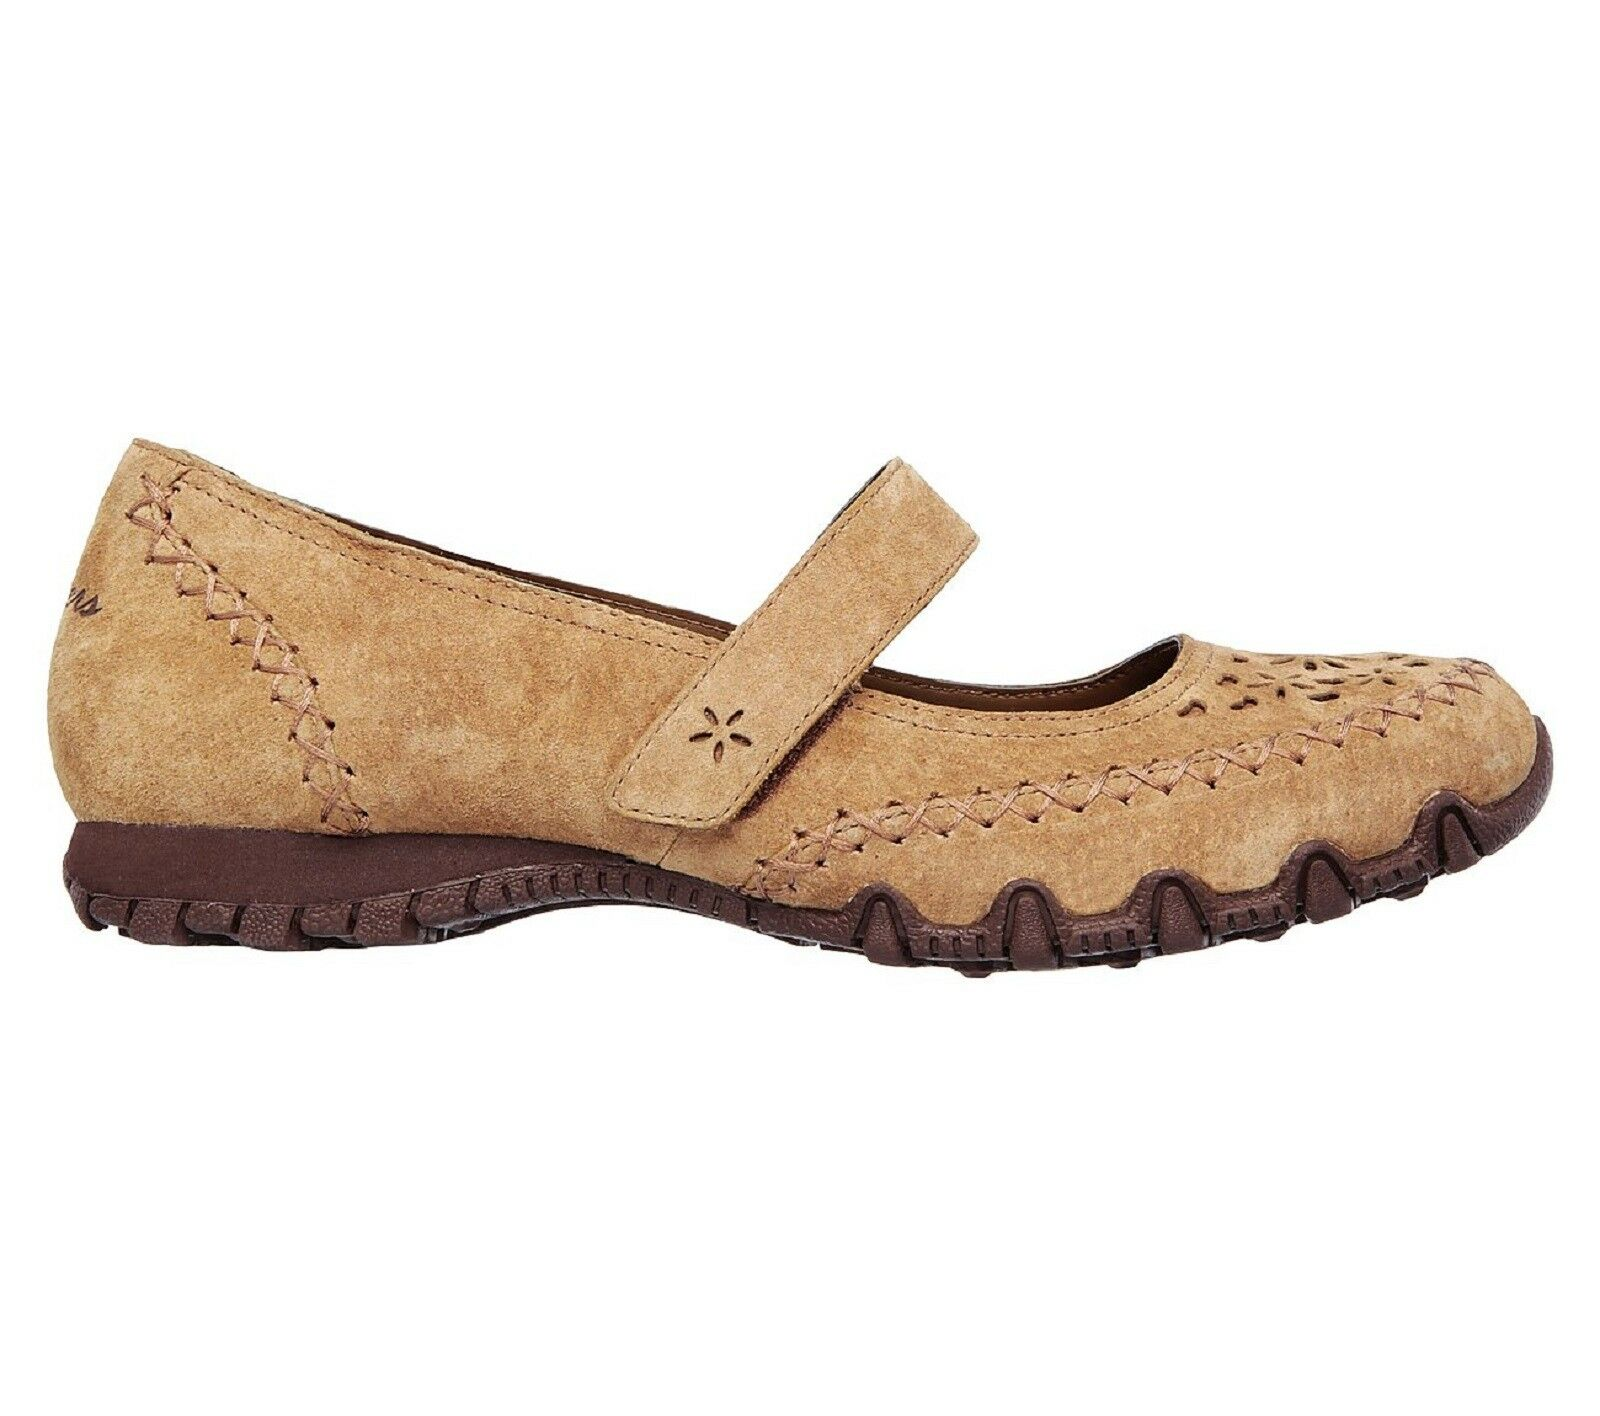 SKECHERS Relaxed Fit  'INVOLVED' Ladies Mary Jane Chestnut  Sz. 8.5 M  NIB